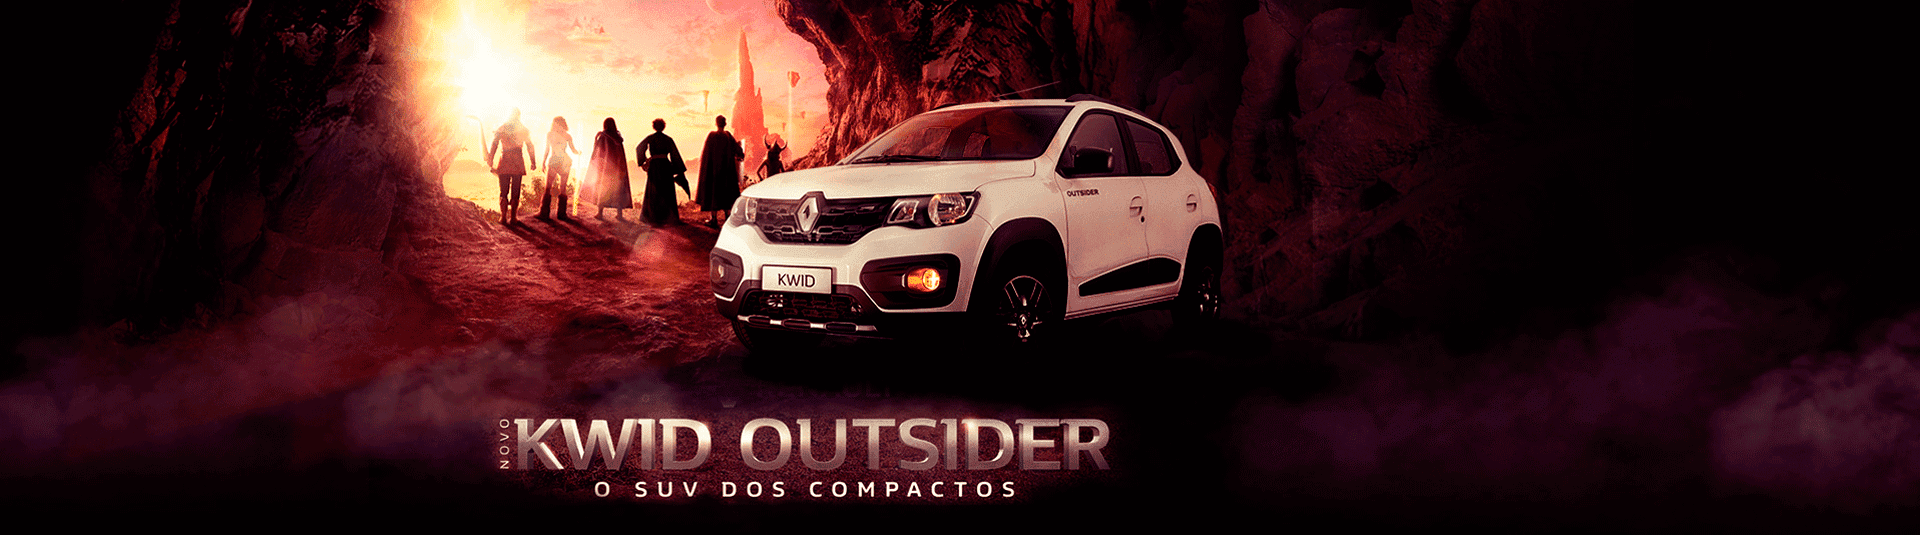 banner-home-kwid-outsider